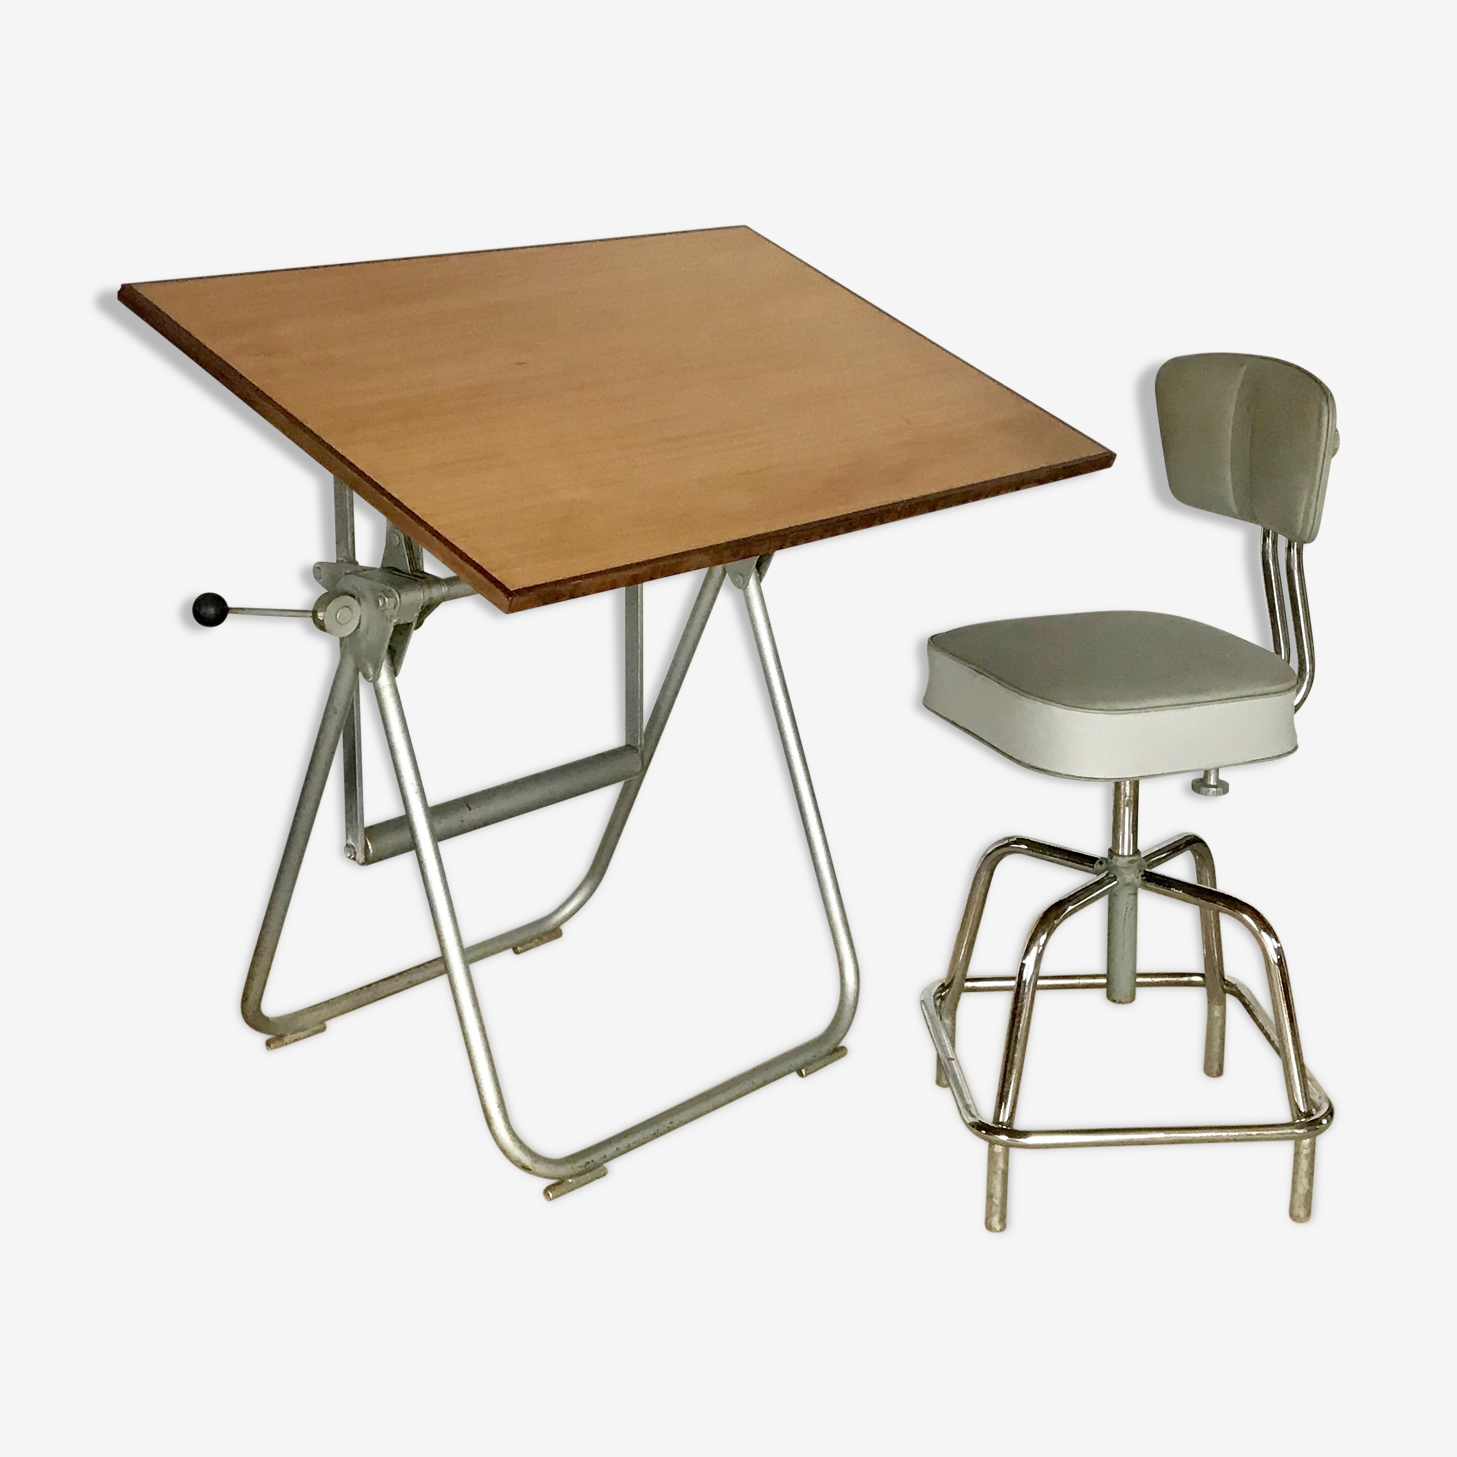 Architect Heliolithe vintage drafting table and Chair